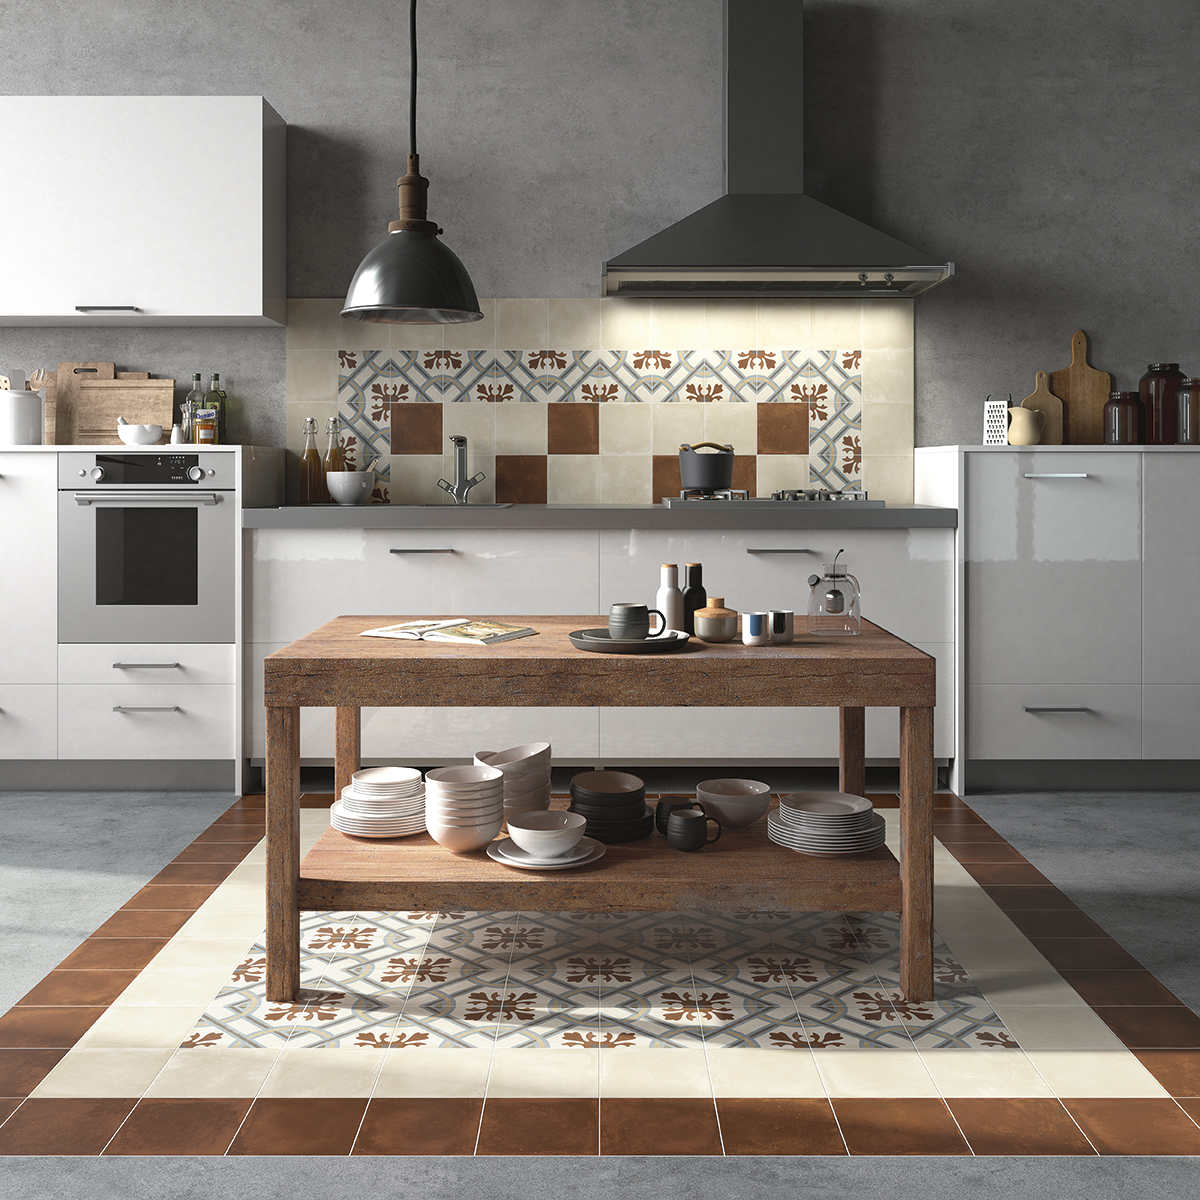 Choosing The Perfect Kitchen Backsplash Tiles Tips And Ideas